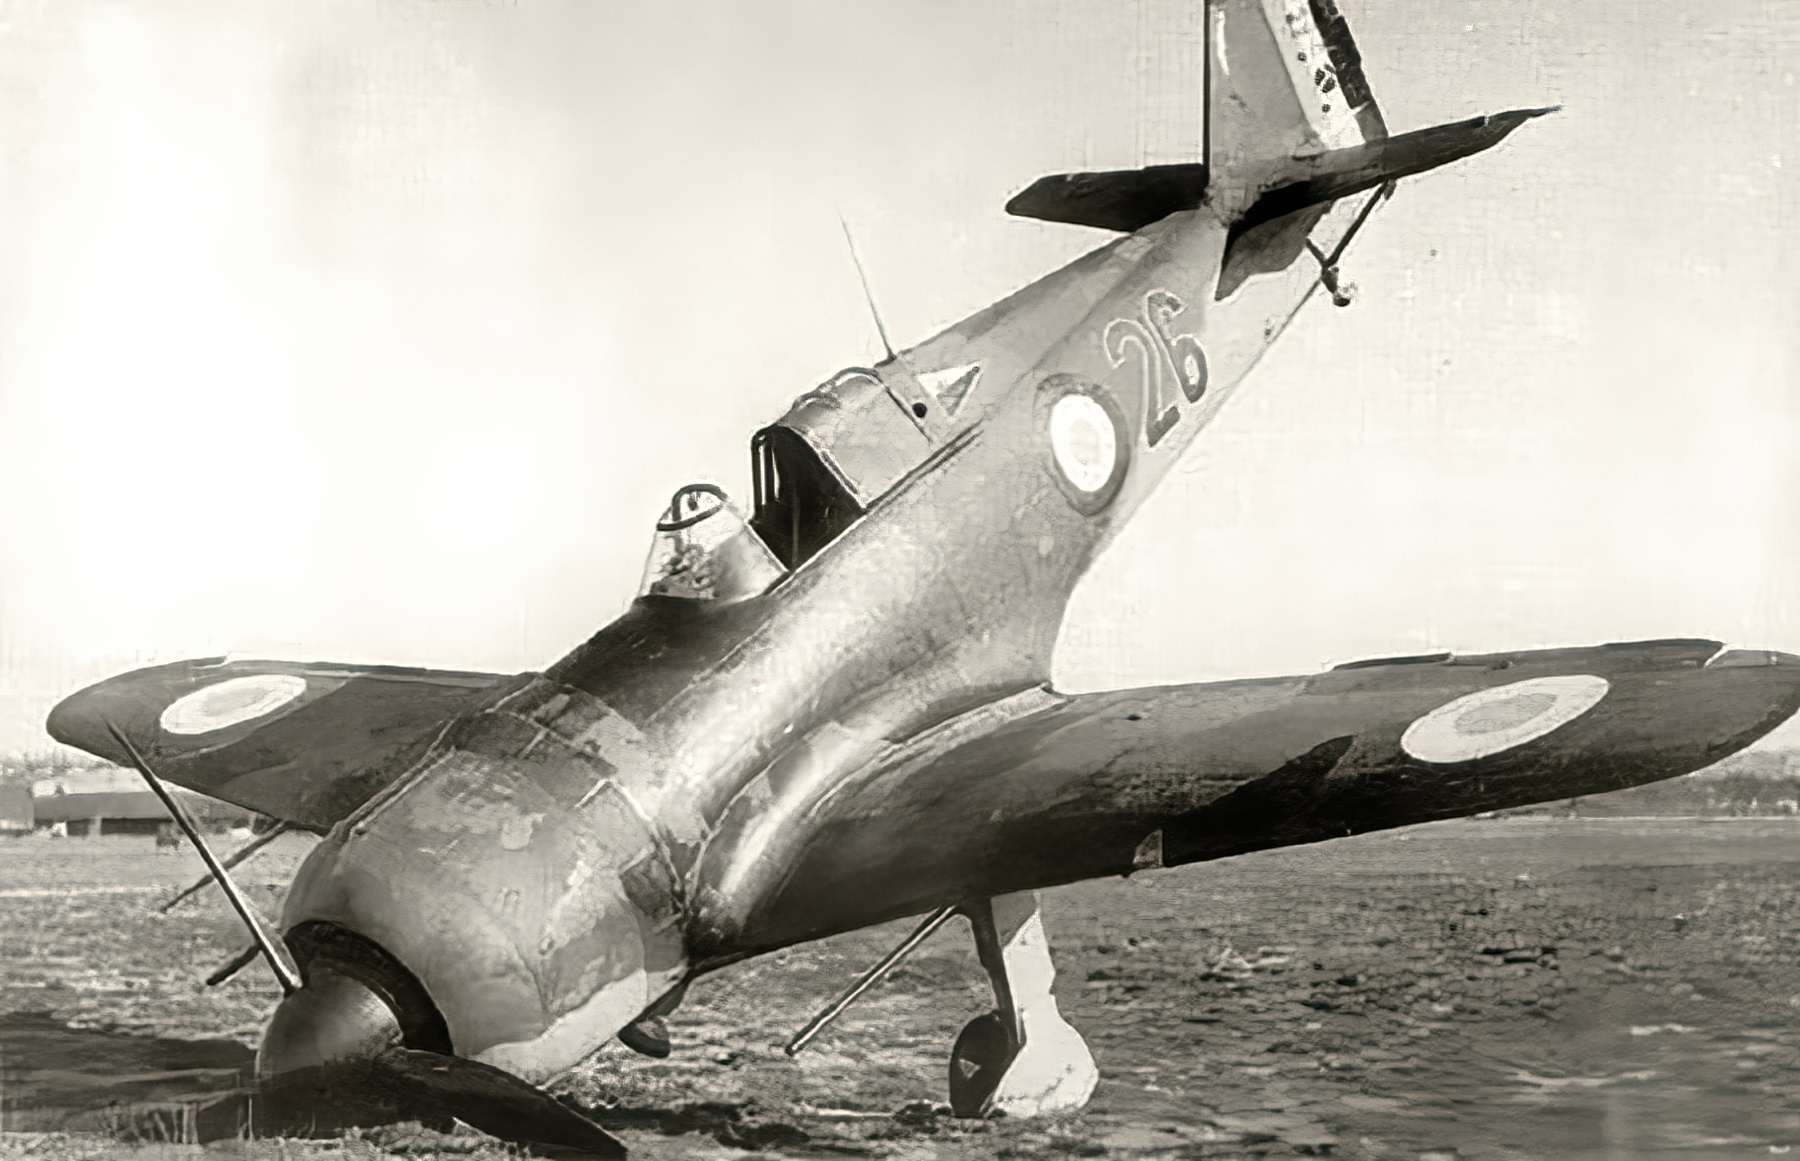 French Airforce Bloch MB 152 Red 26 landing mishap Battle of France May 1940 ebay 01